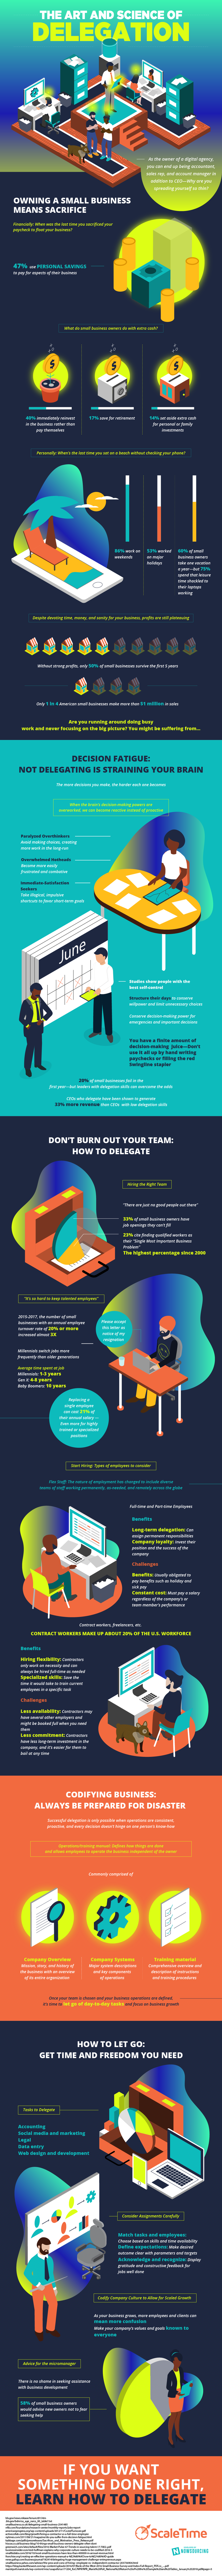 Infographic: The Art & Science of Delegation